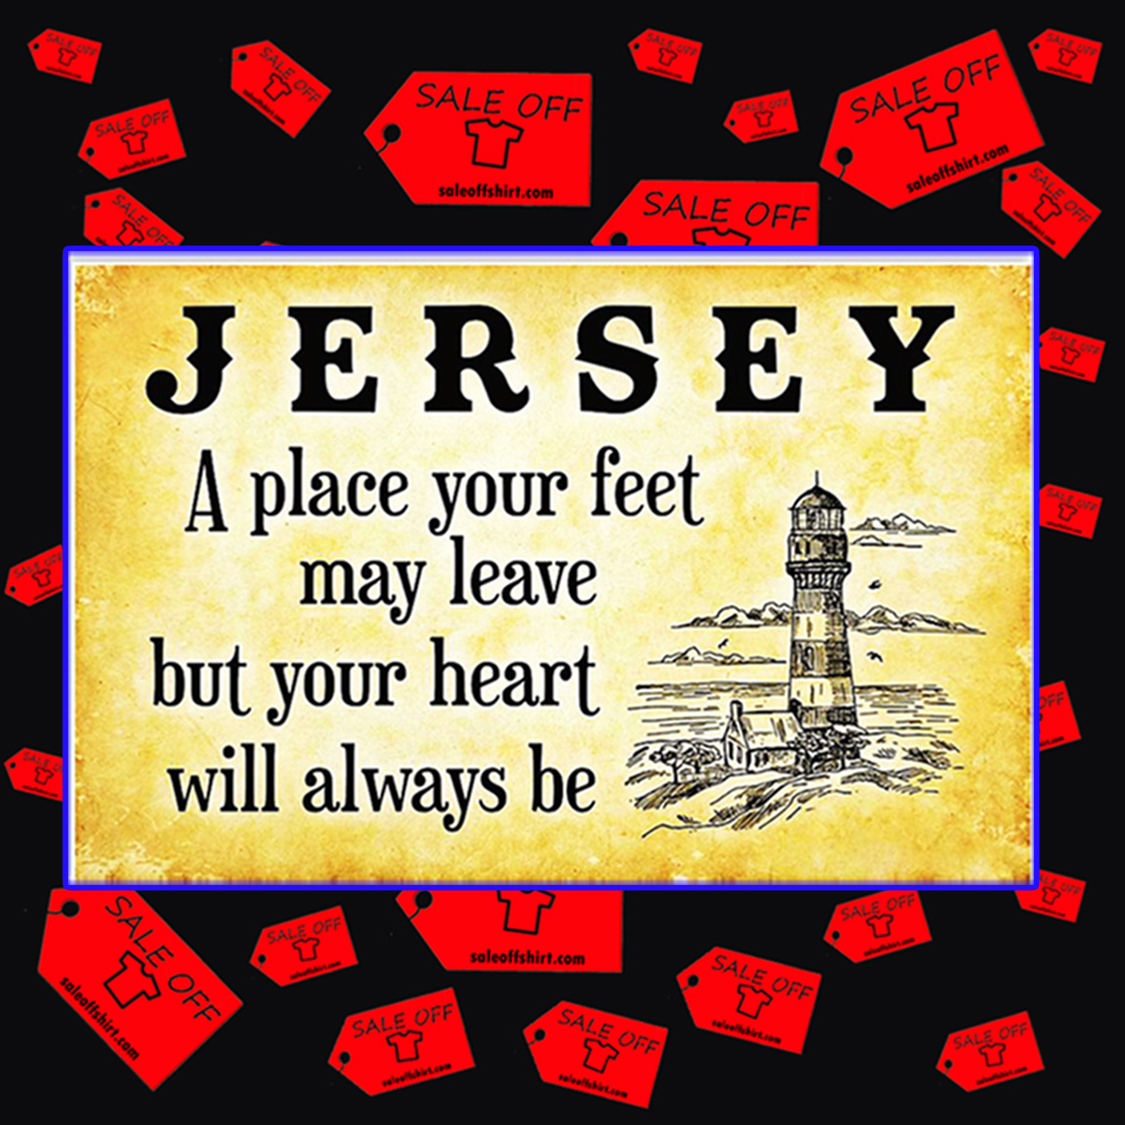 Jersey a place your feet may leave but your heart will always be poster 17x11